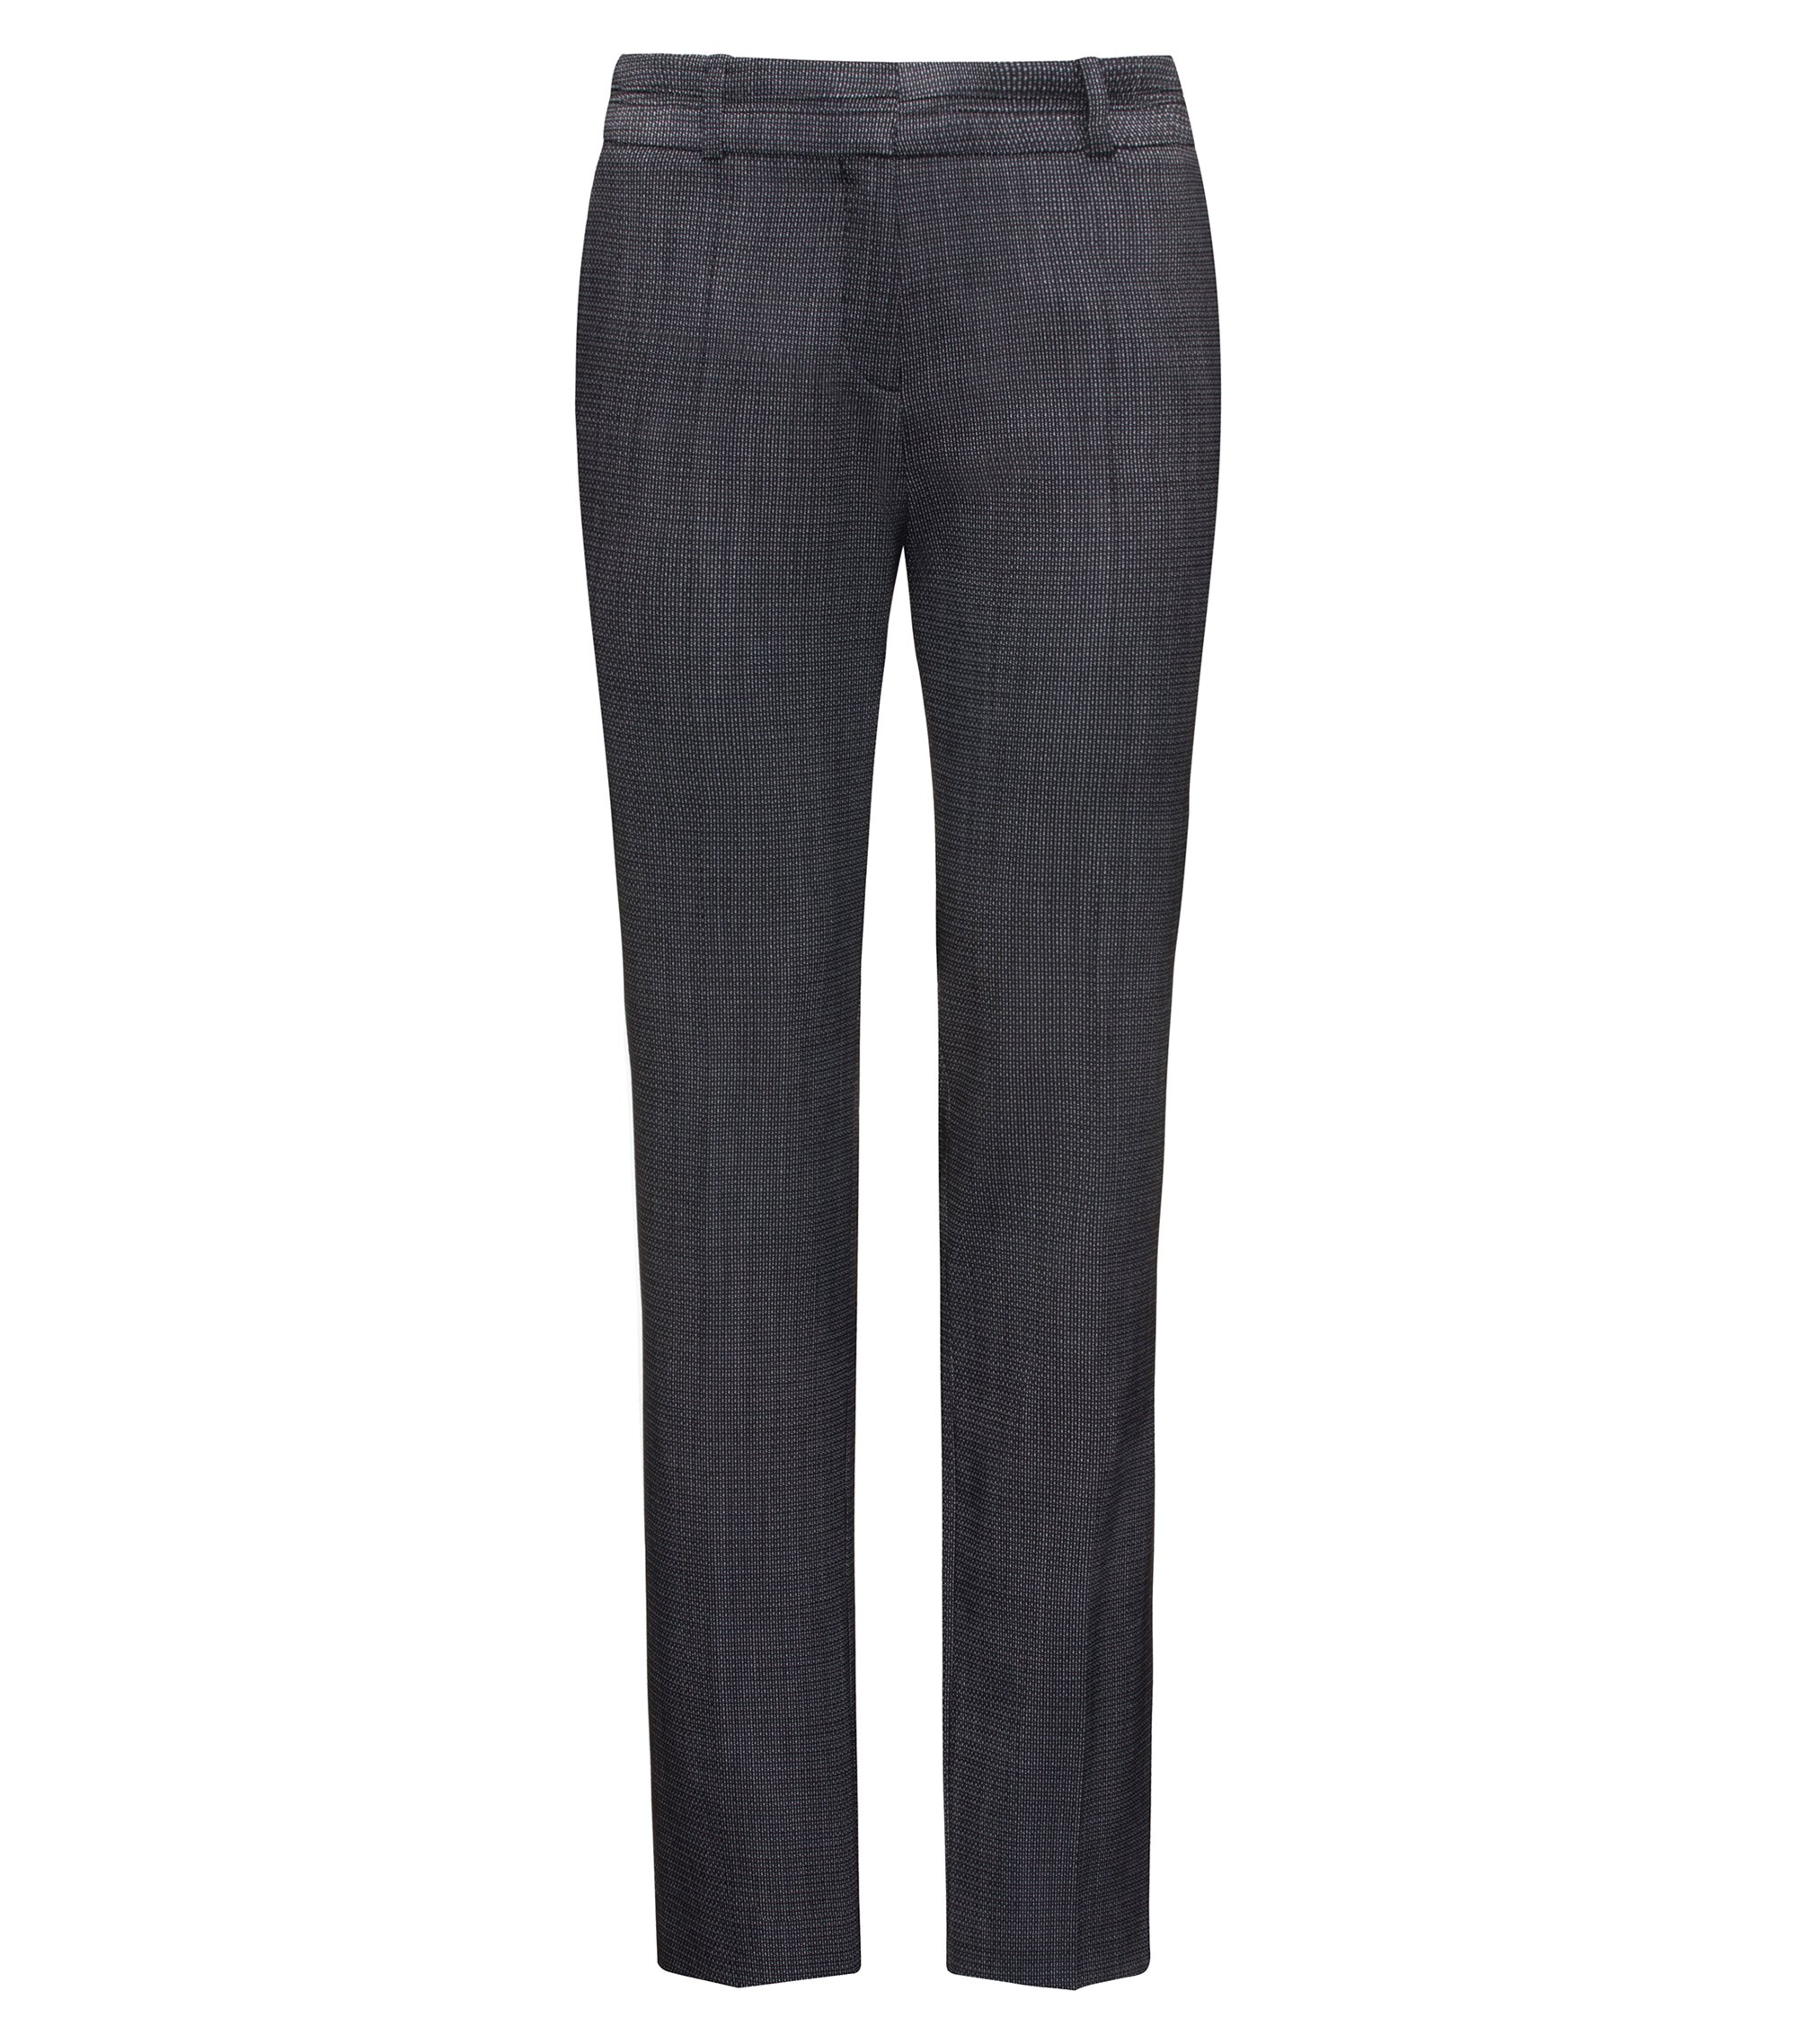 Pantalon de tailleur Regular Fit en laine stretch structurée, Fantaisie